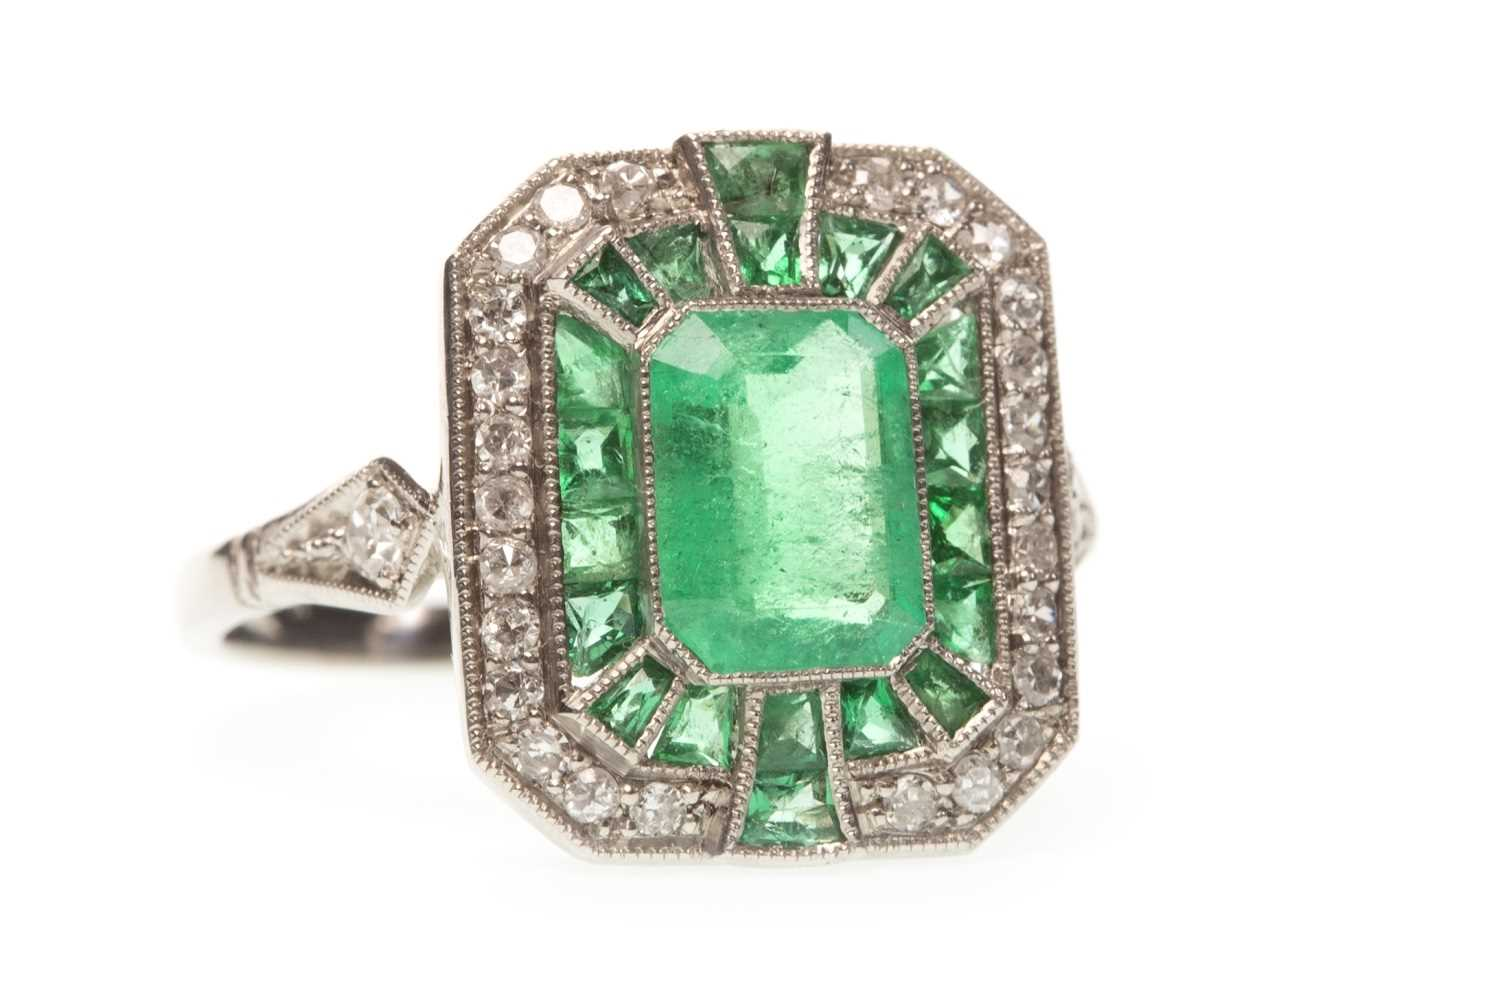 Lot 60-AN ART DECO STYLE EMERALD AND DIAMOND RING